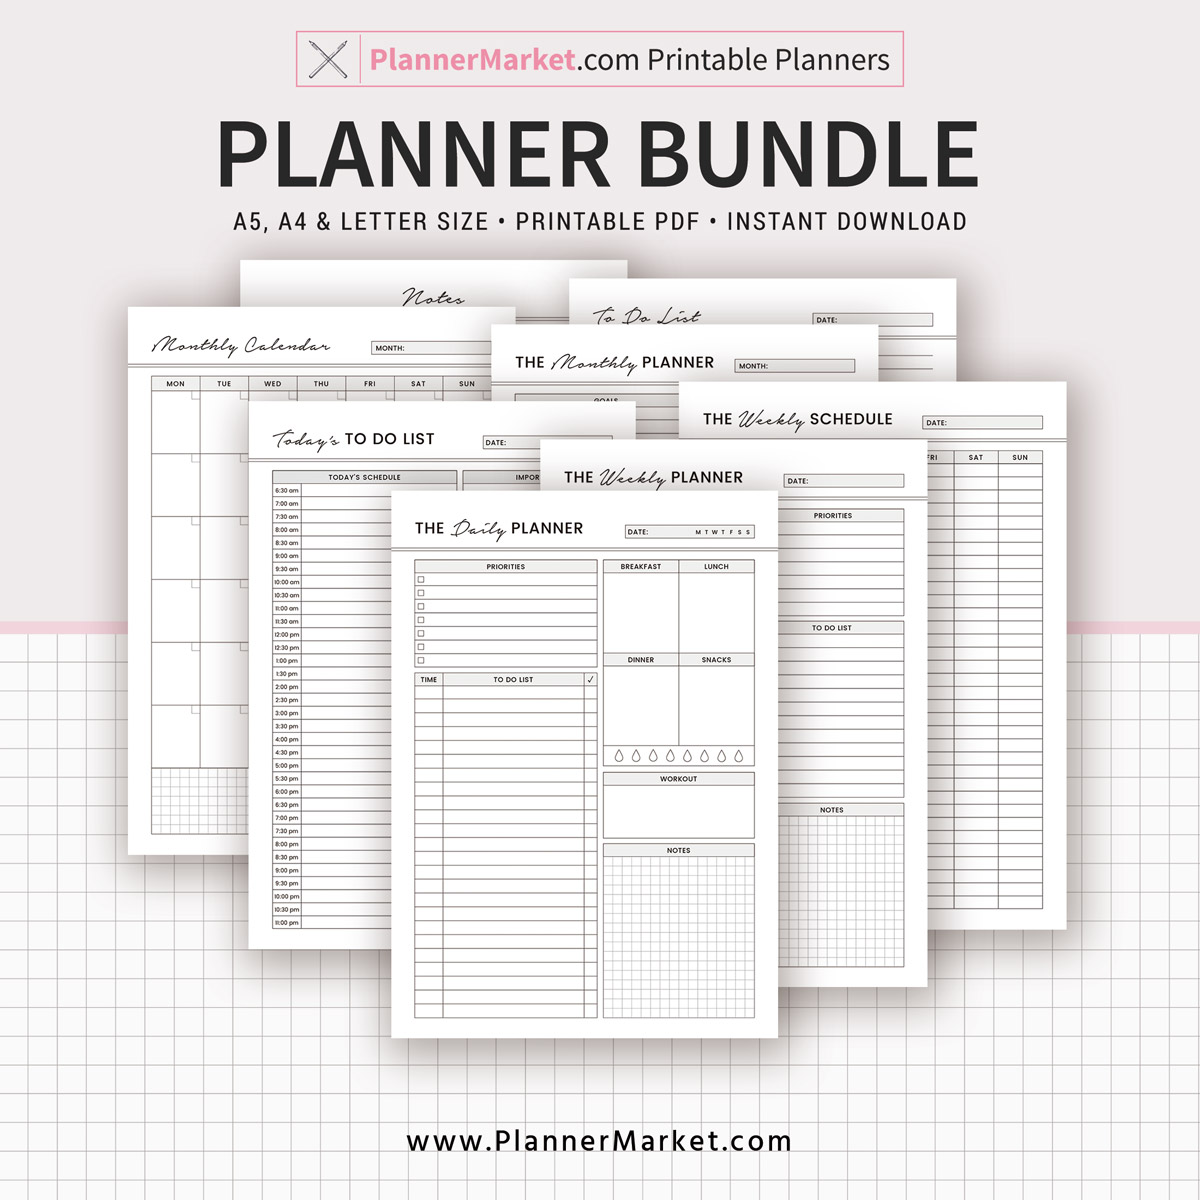 photo relating to Planner Refills referred to as Planner Package, 2019 Planner, Day-to-day, Weekly, Regular monthly, Towards Do, Notes, A5, A4, Letter Measurement, Planner Inserts, Planner Binder